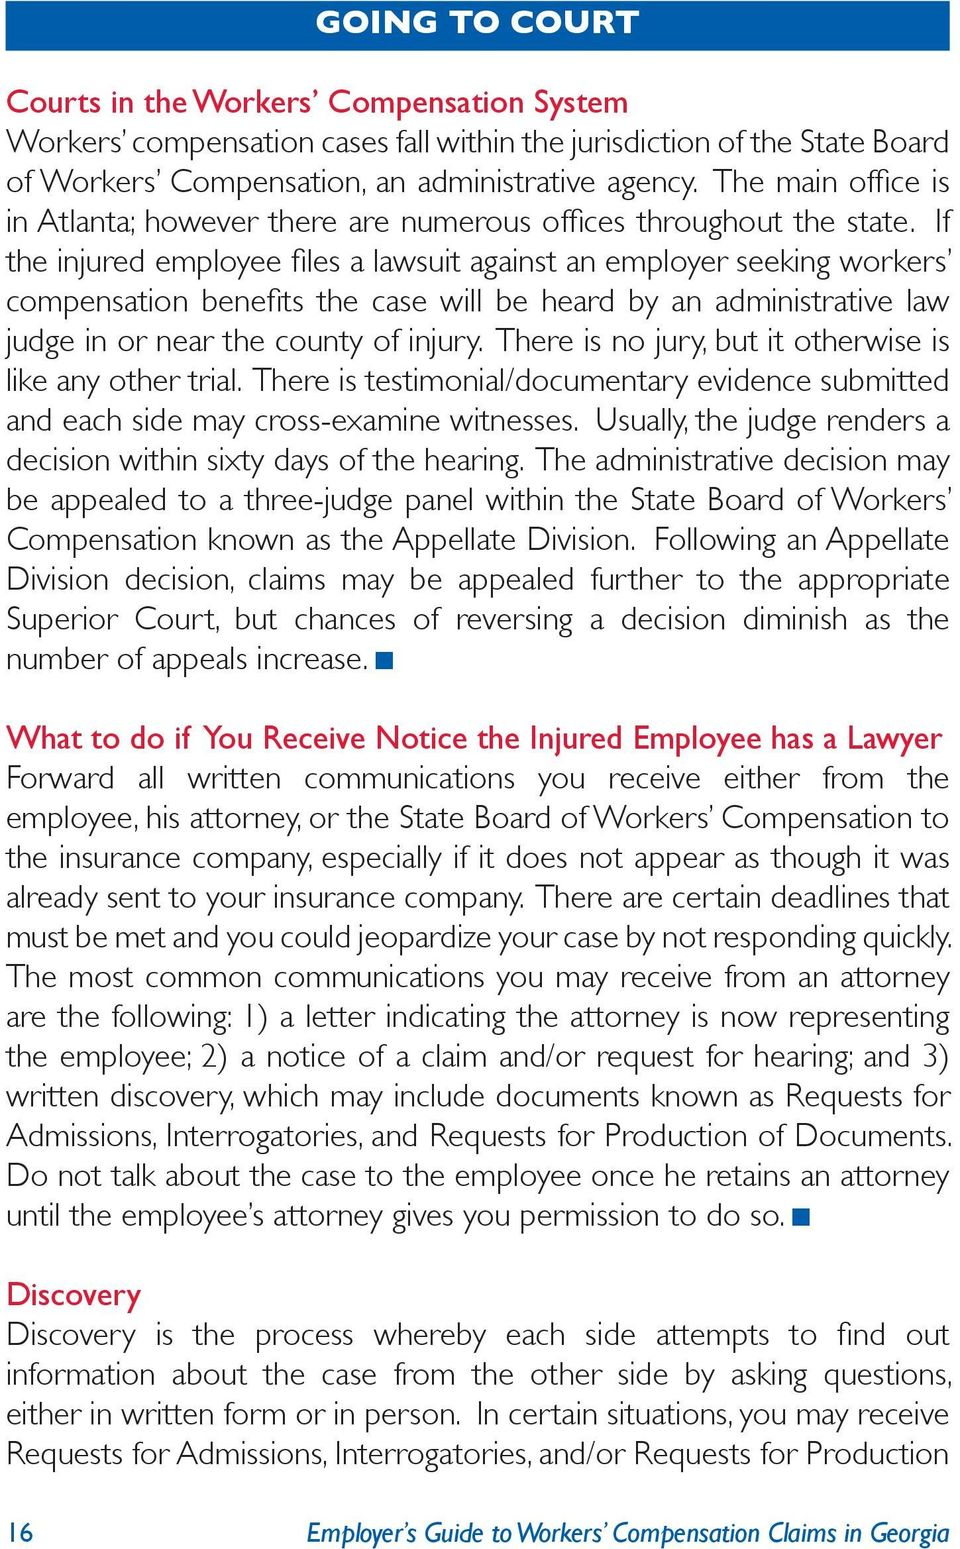 If the injured employee files a lawsuit against an employer seeking workers compensation benefits the case will be heard by an administrative law judge in or near the county of injury.